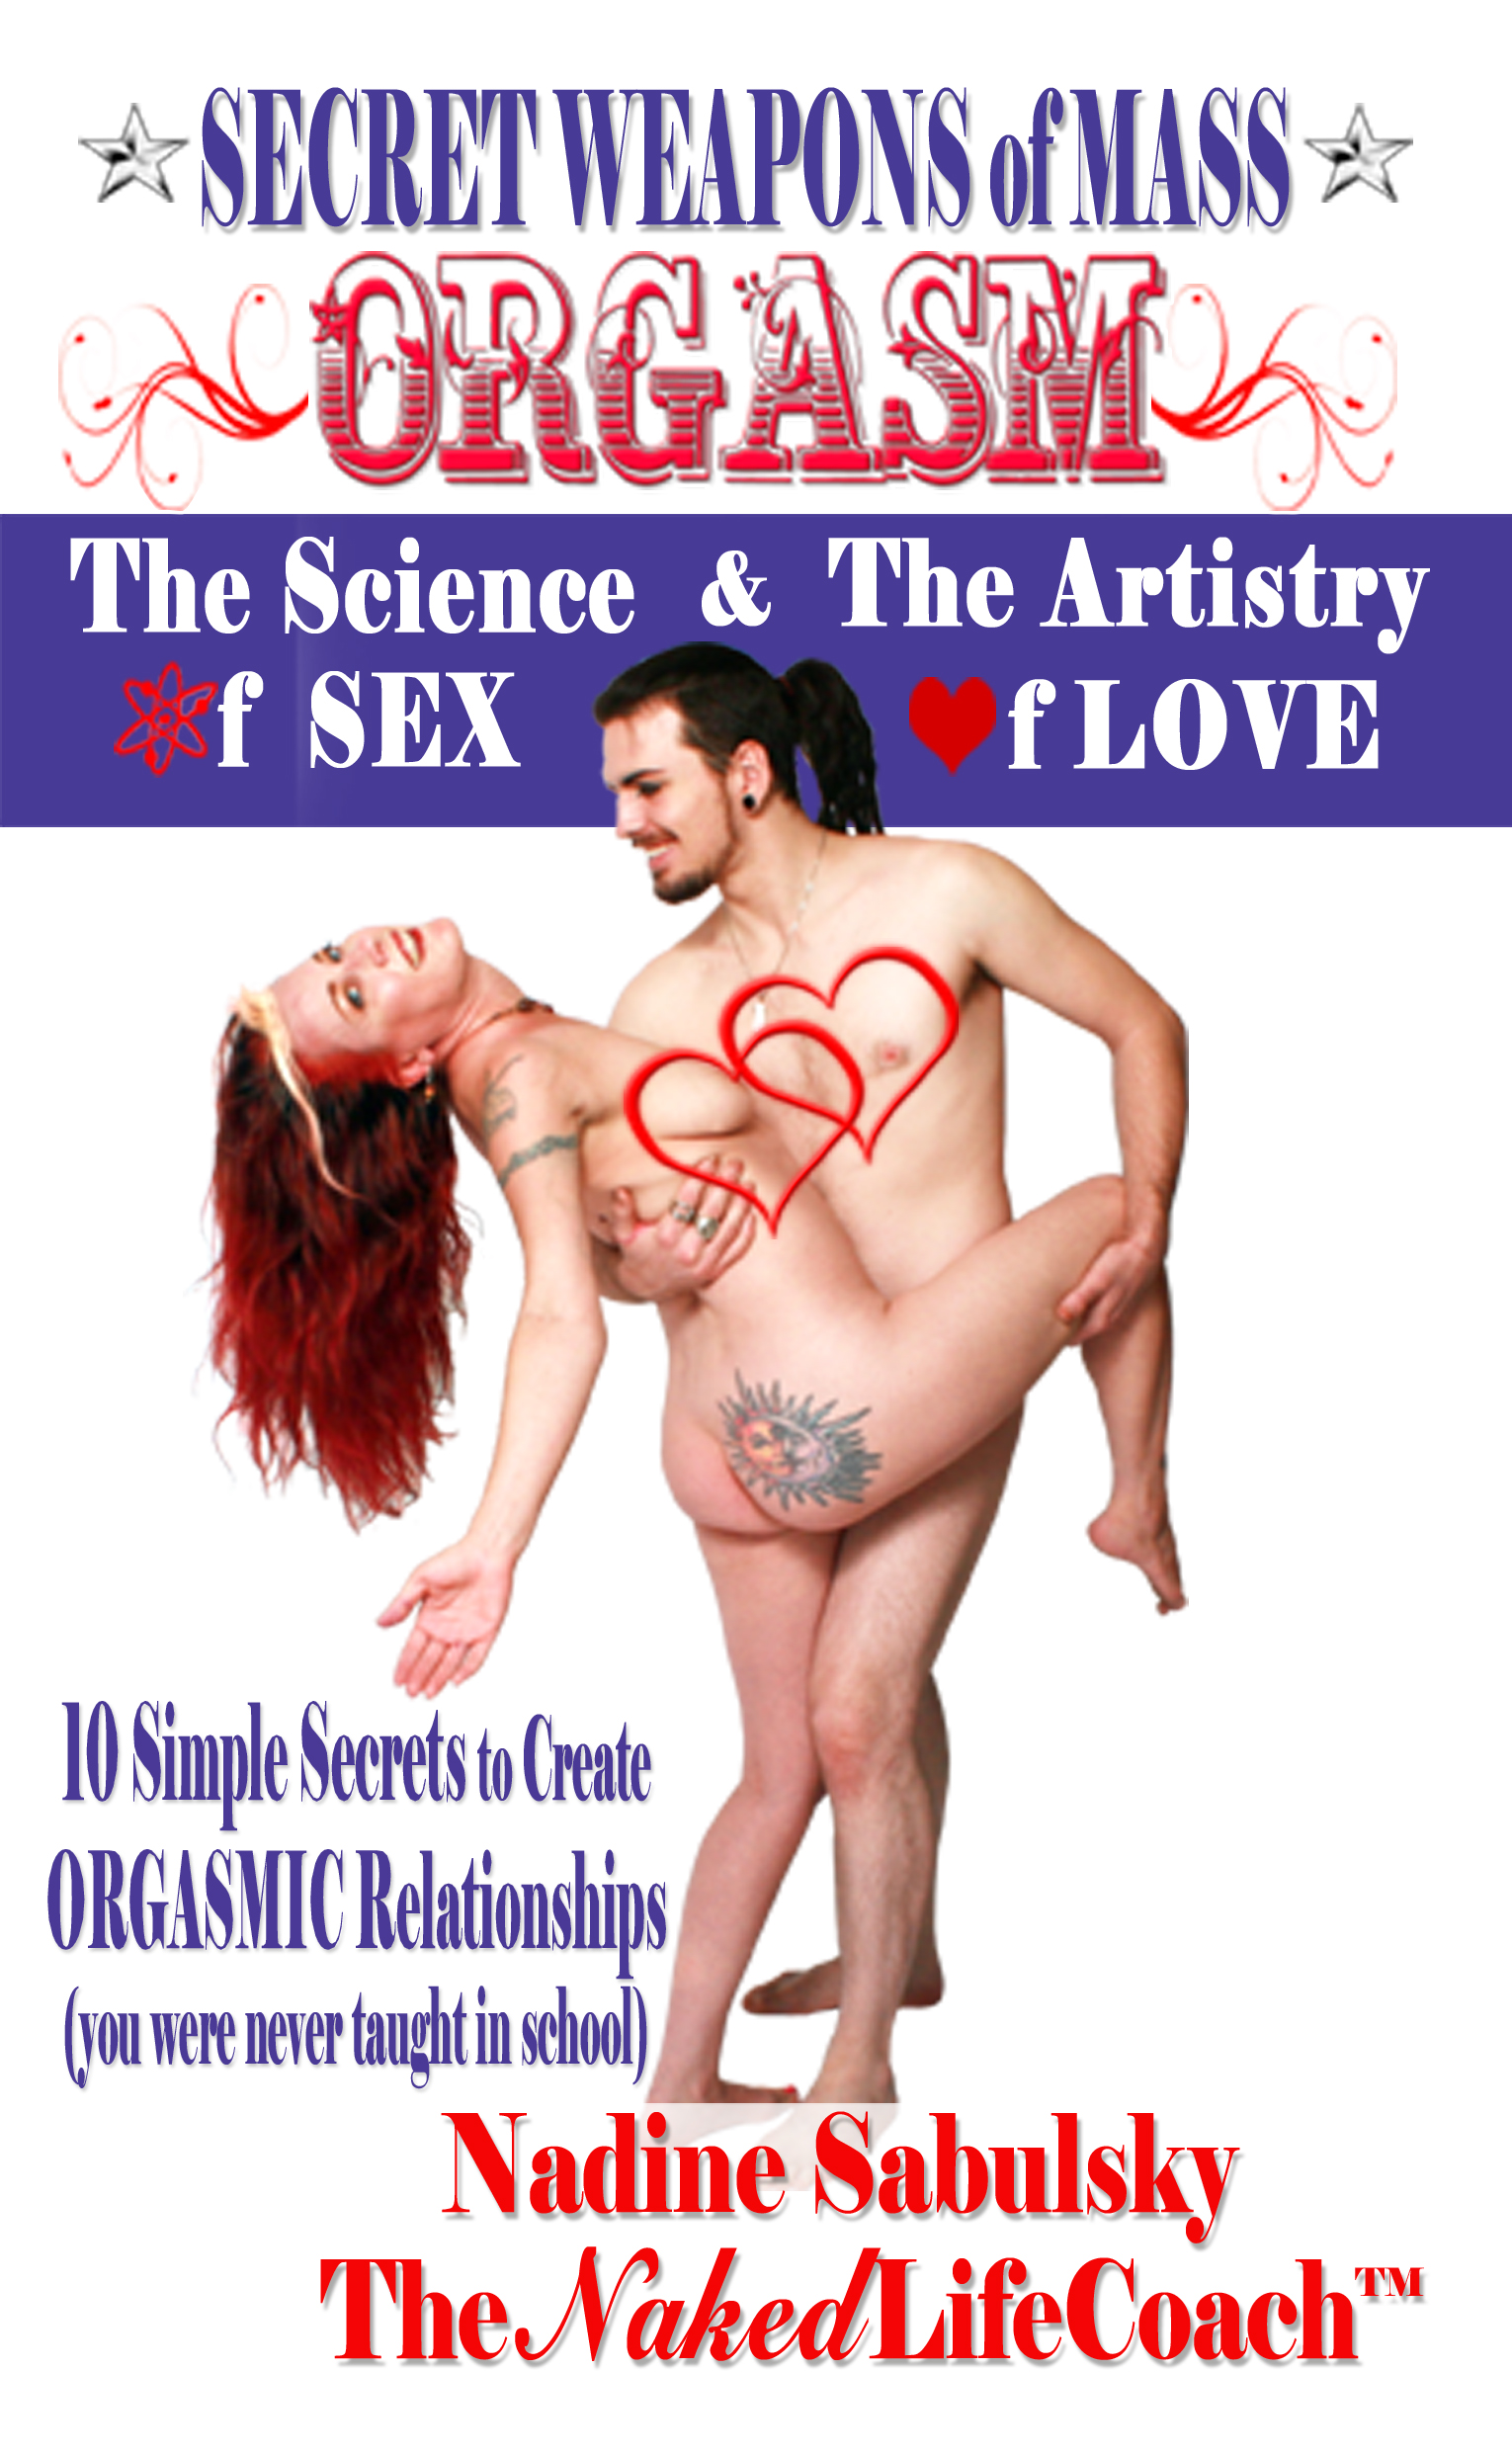 Secret Weapons of Mass Orgasm front cover